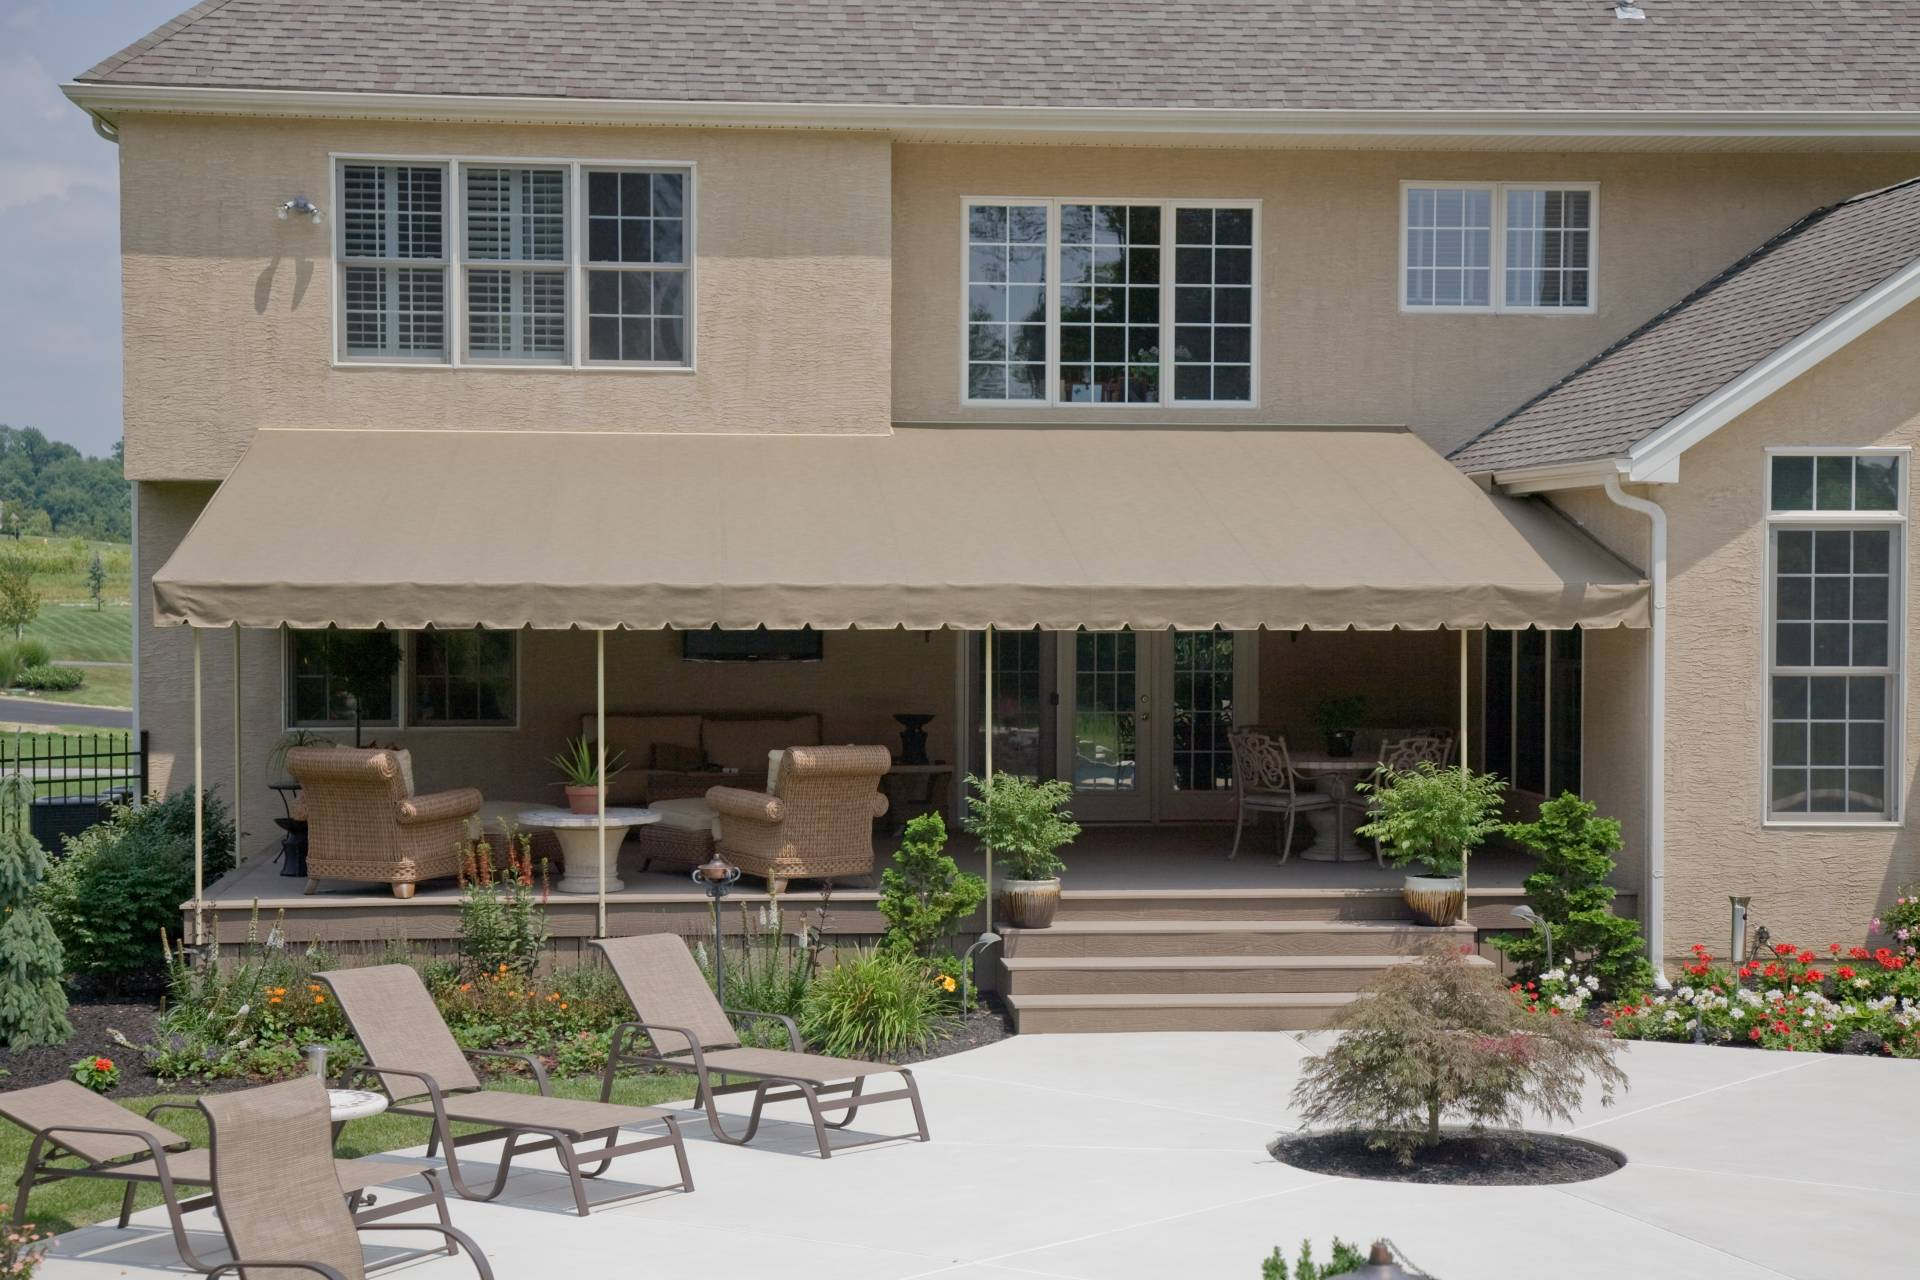 shade ideas options attached cover designs cheap pictures freestanding covering covers build over porch patio how building a back retractable to cost covered deck additions budget size of best on awning photos roof full overhang